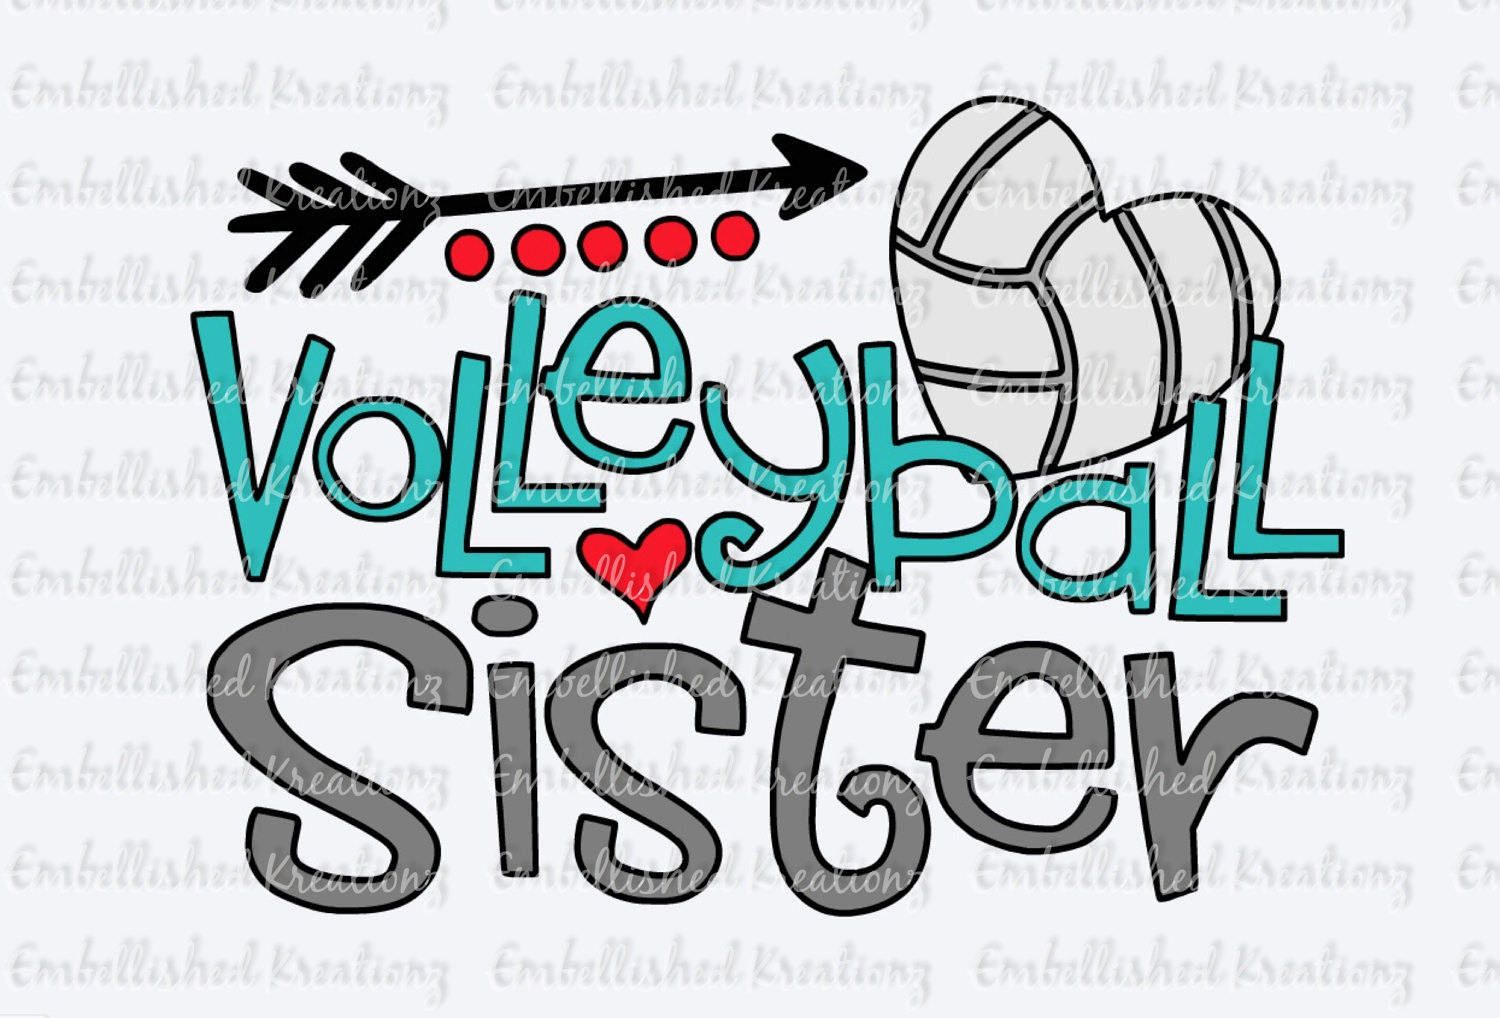 Volleyball Daughter Volleyball Sister With Heart Volleyball Heart Dots Arrow Vinyl Deca Volleyball Shirt Designs Cute Volleyball Shirts Volleyball Mom Shirts